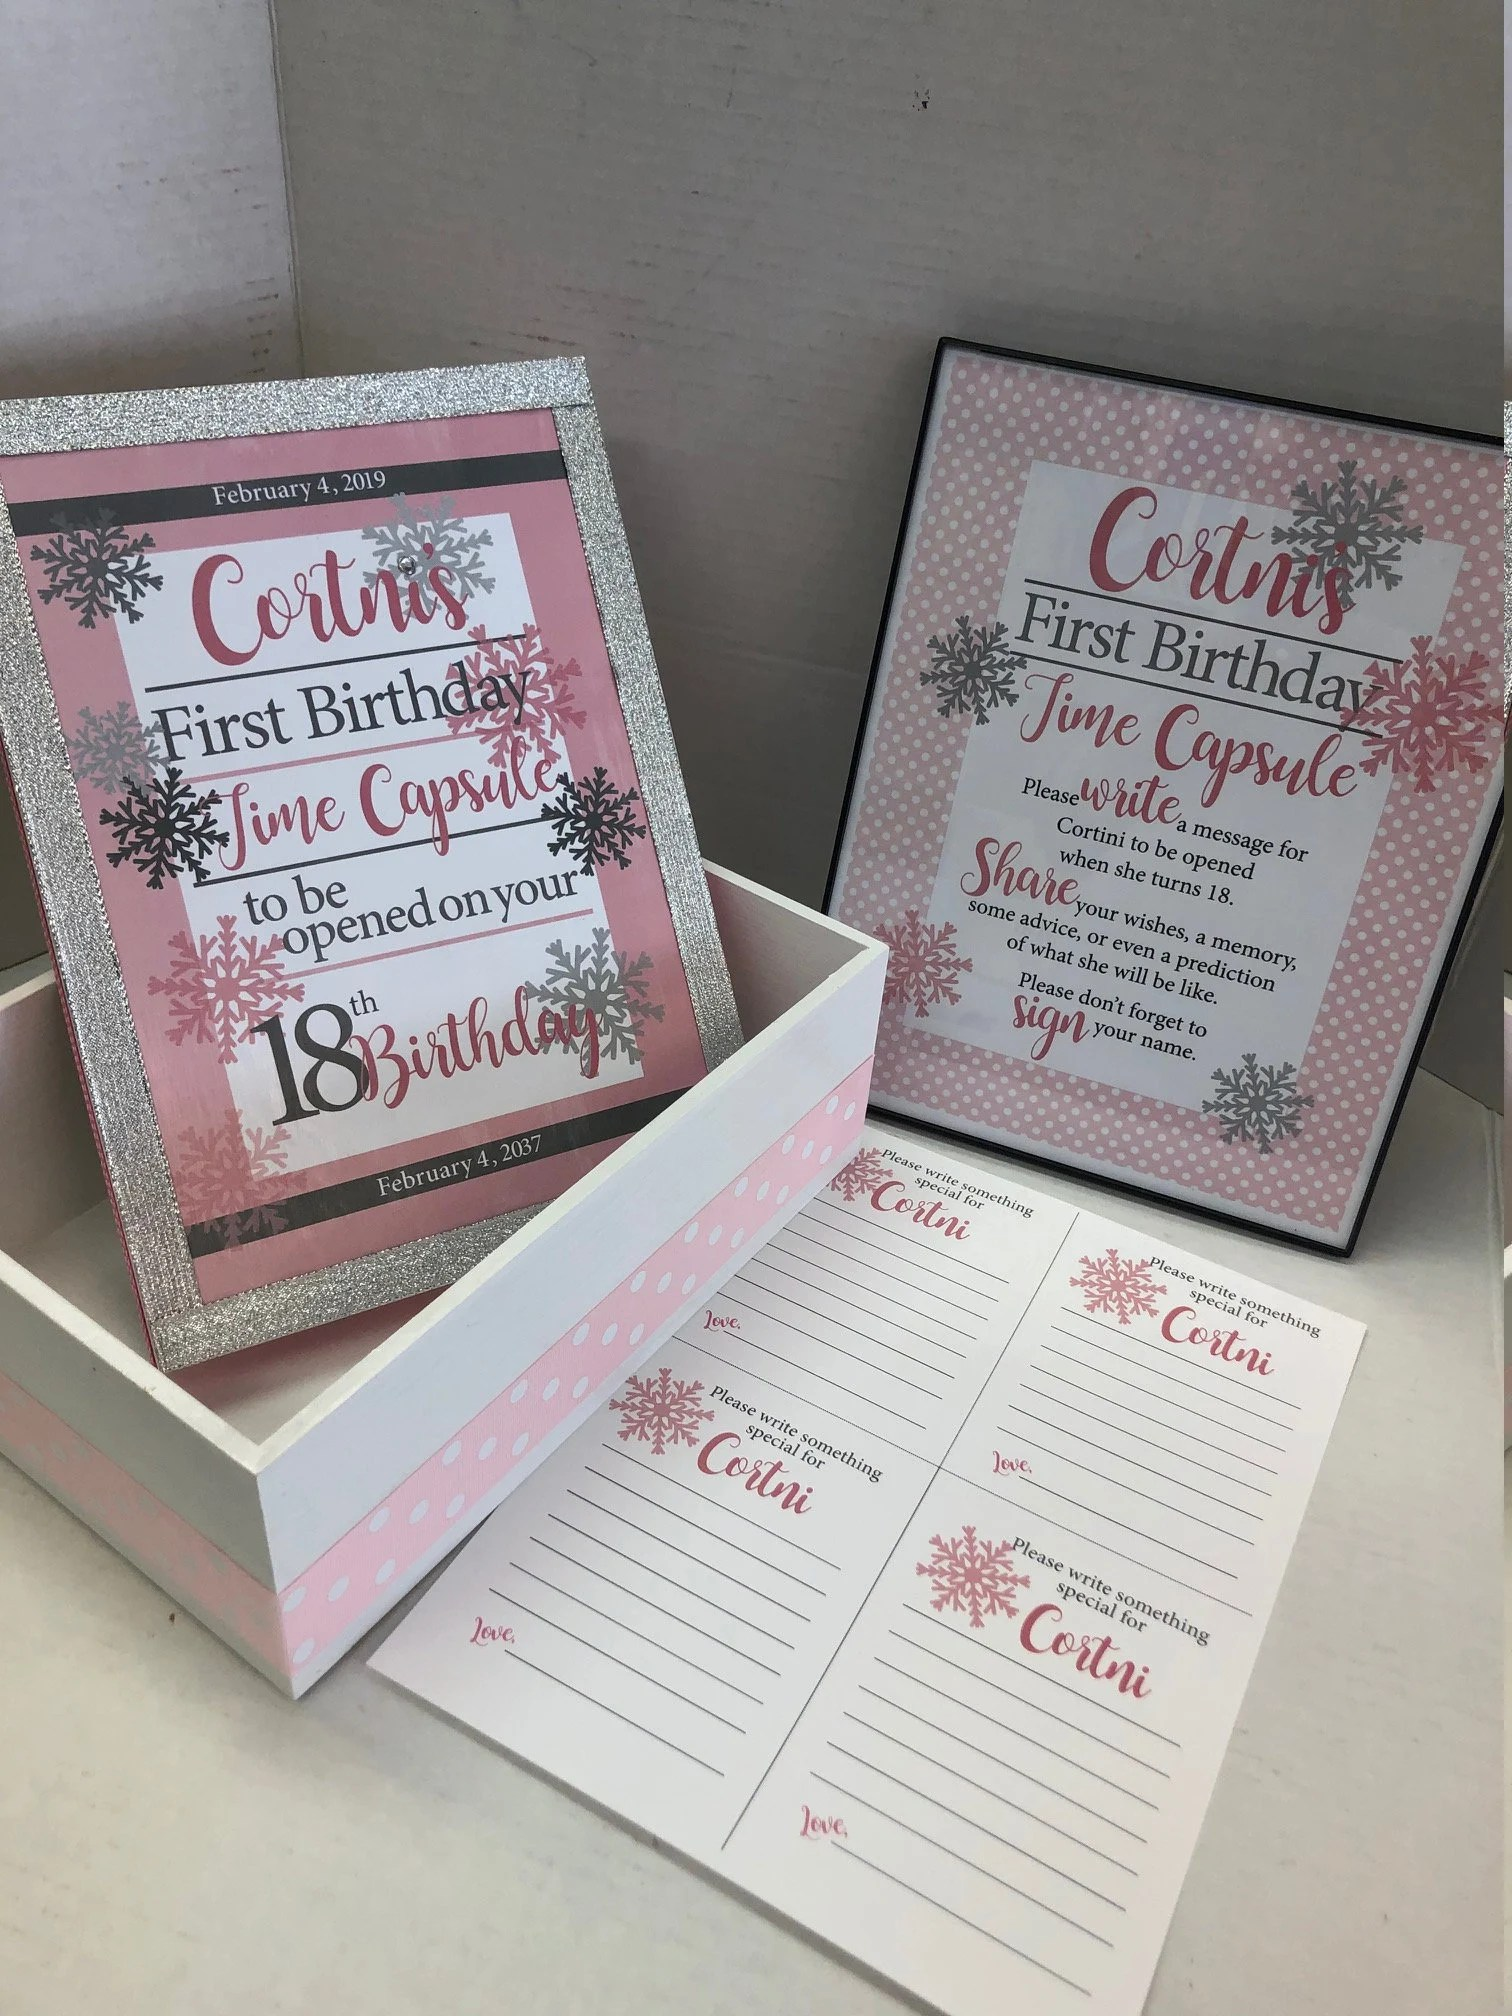 With Framed Instructions And Cards To Print Winter Snowflake Themed First Birthday Time Capsule Custom Home Living Baskets Bowls Vadel Com